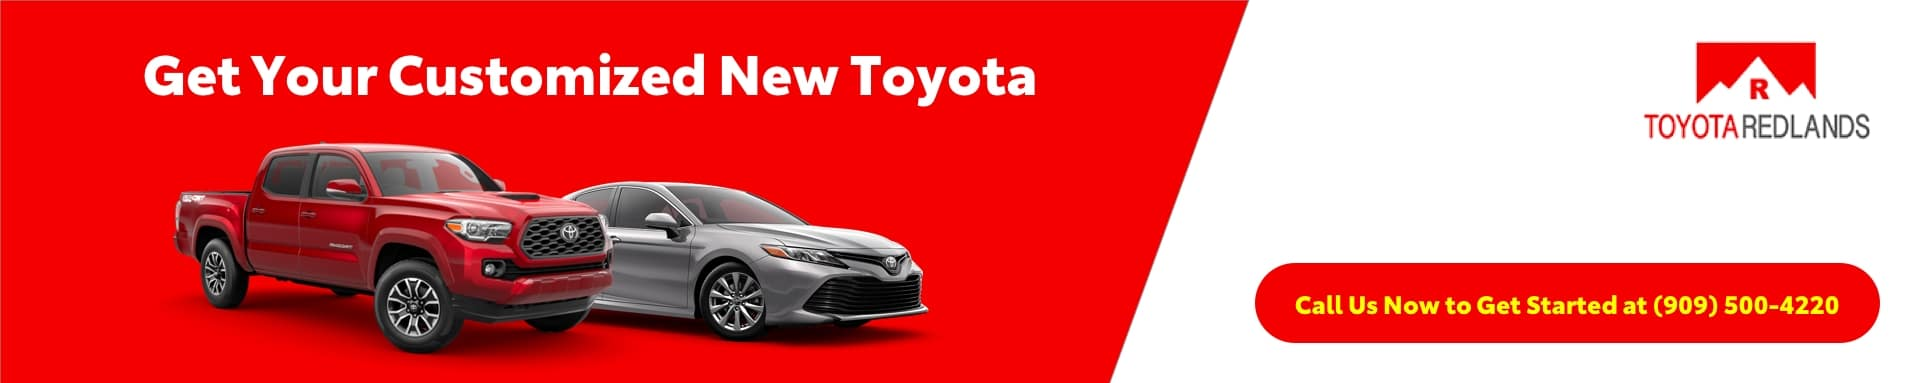 toyota banners